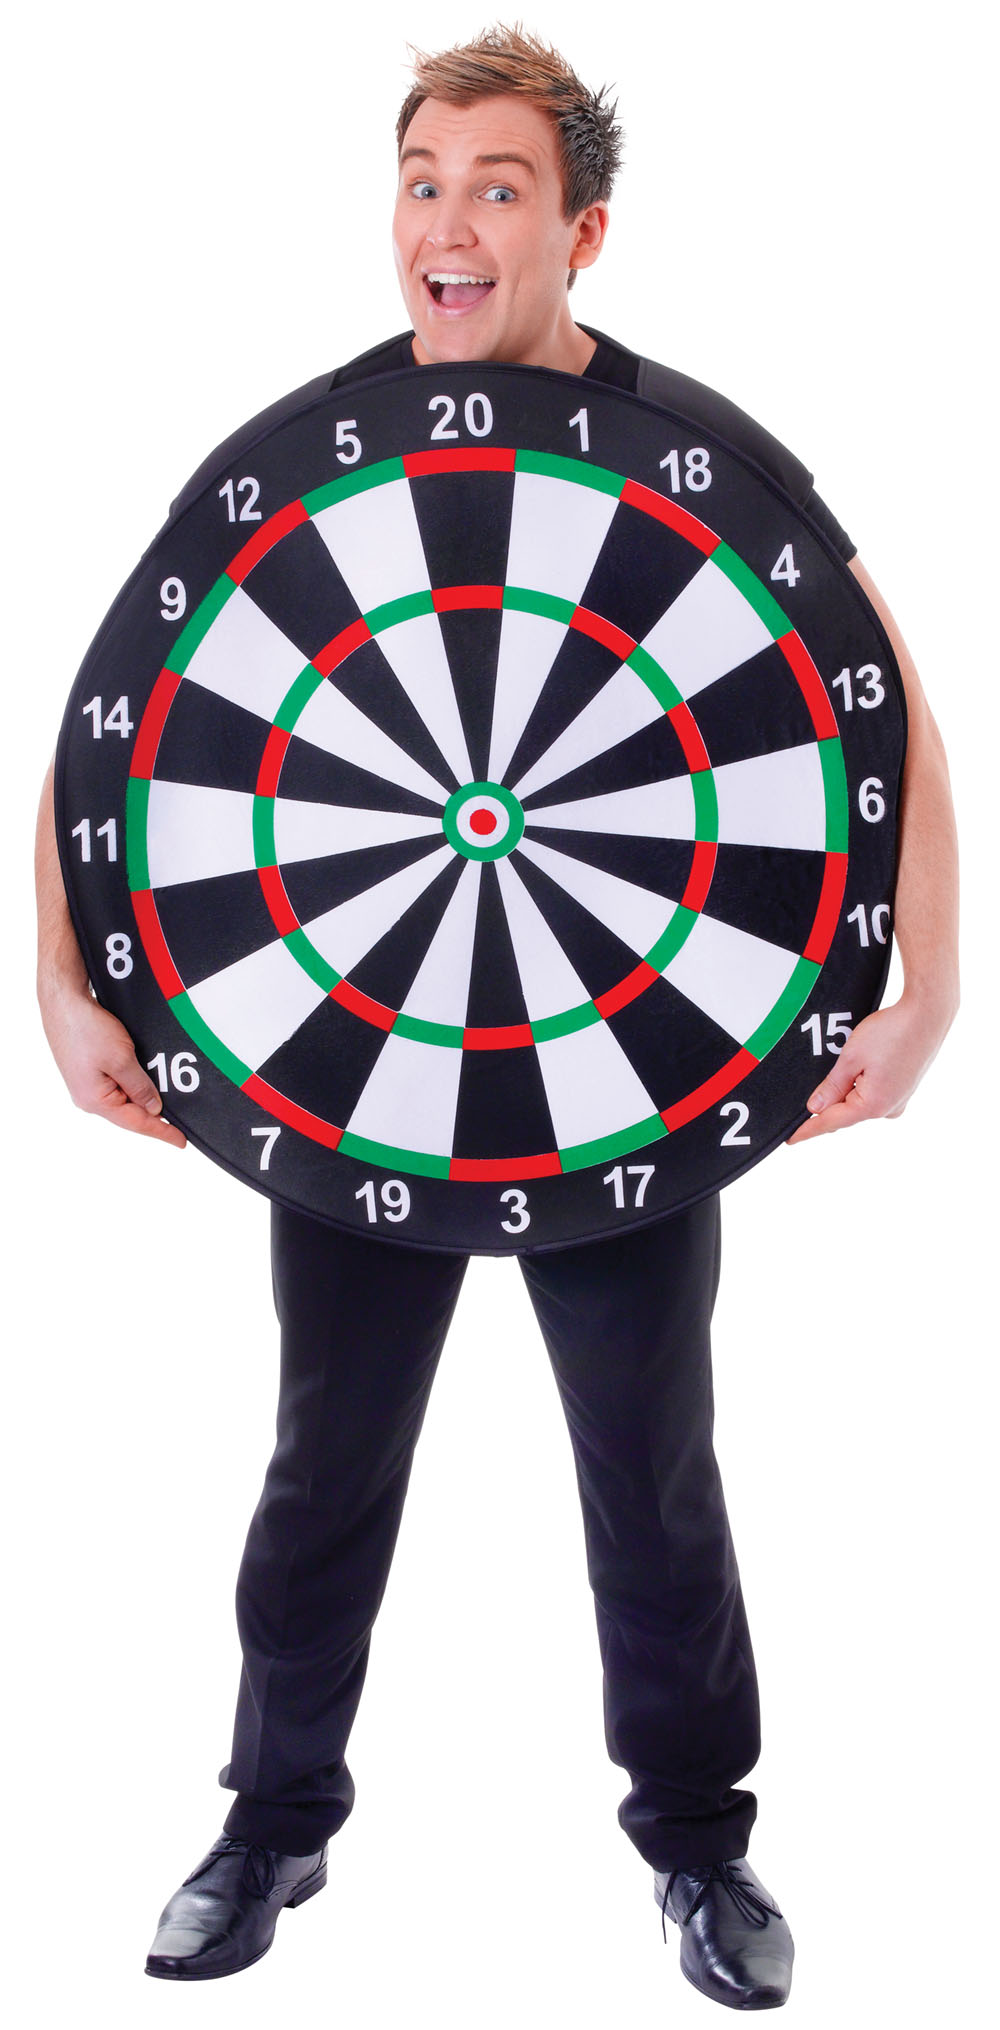 Unisex Dartboard Game Fancy Dress Costume Pub Dart Board Competition Outfit